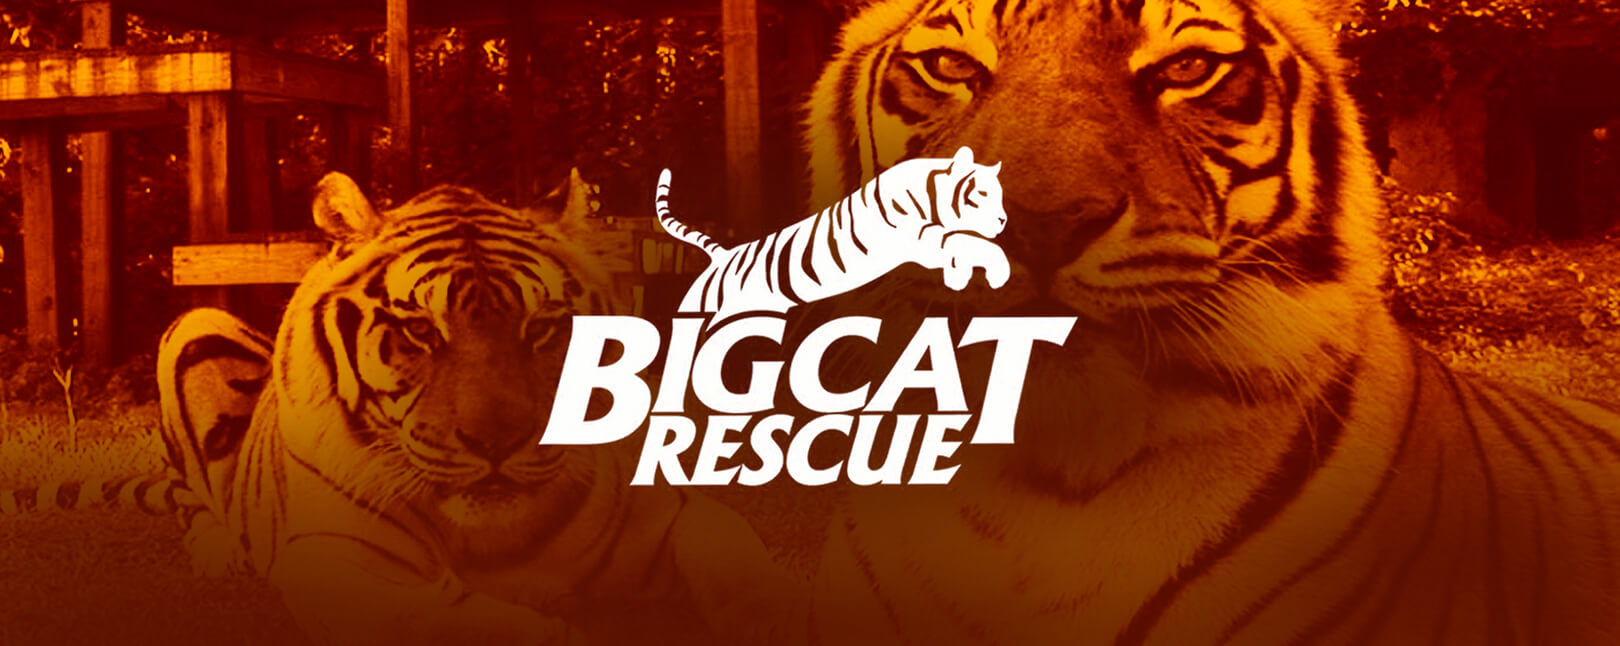 Chargebacks911® Gets Wild With Big Cat Rescue